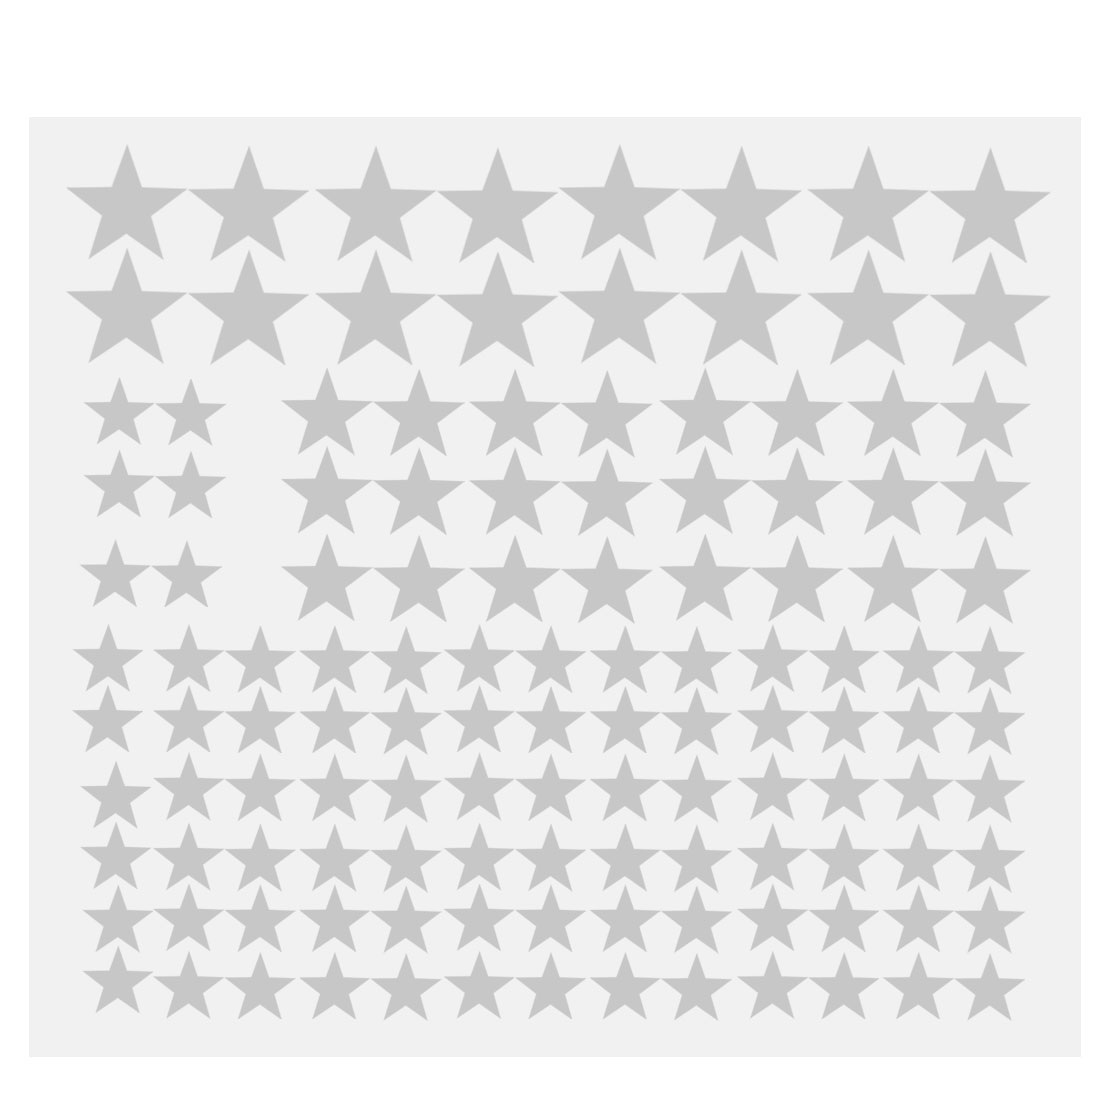 110pcs Star Pattern Wall Stickers Removable Art Decal for Bedroom Silver Tone